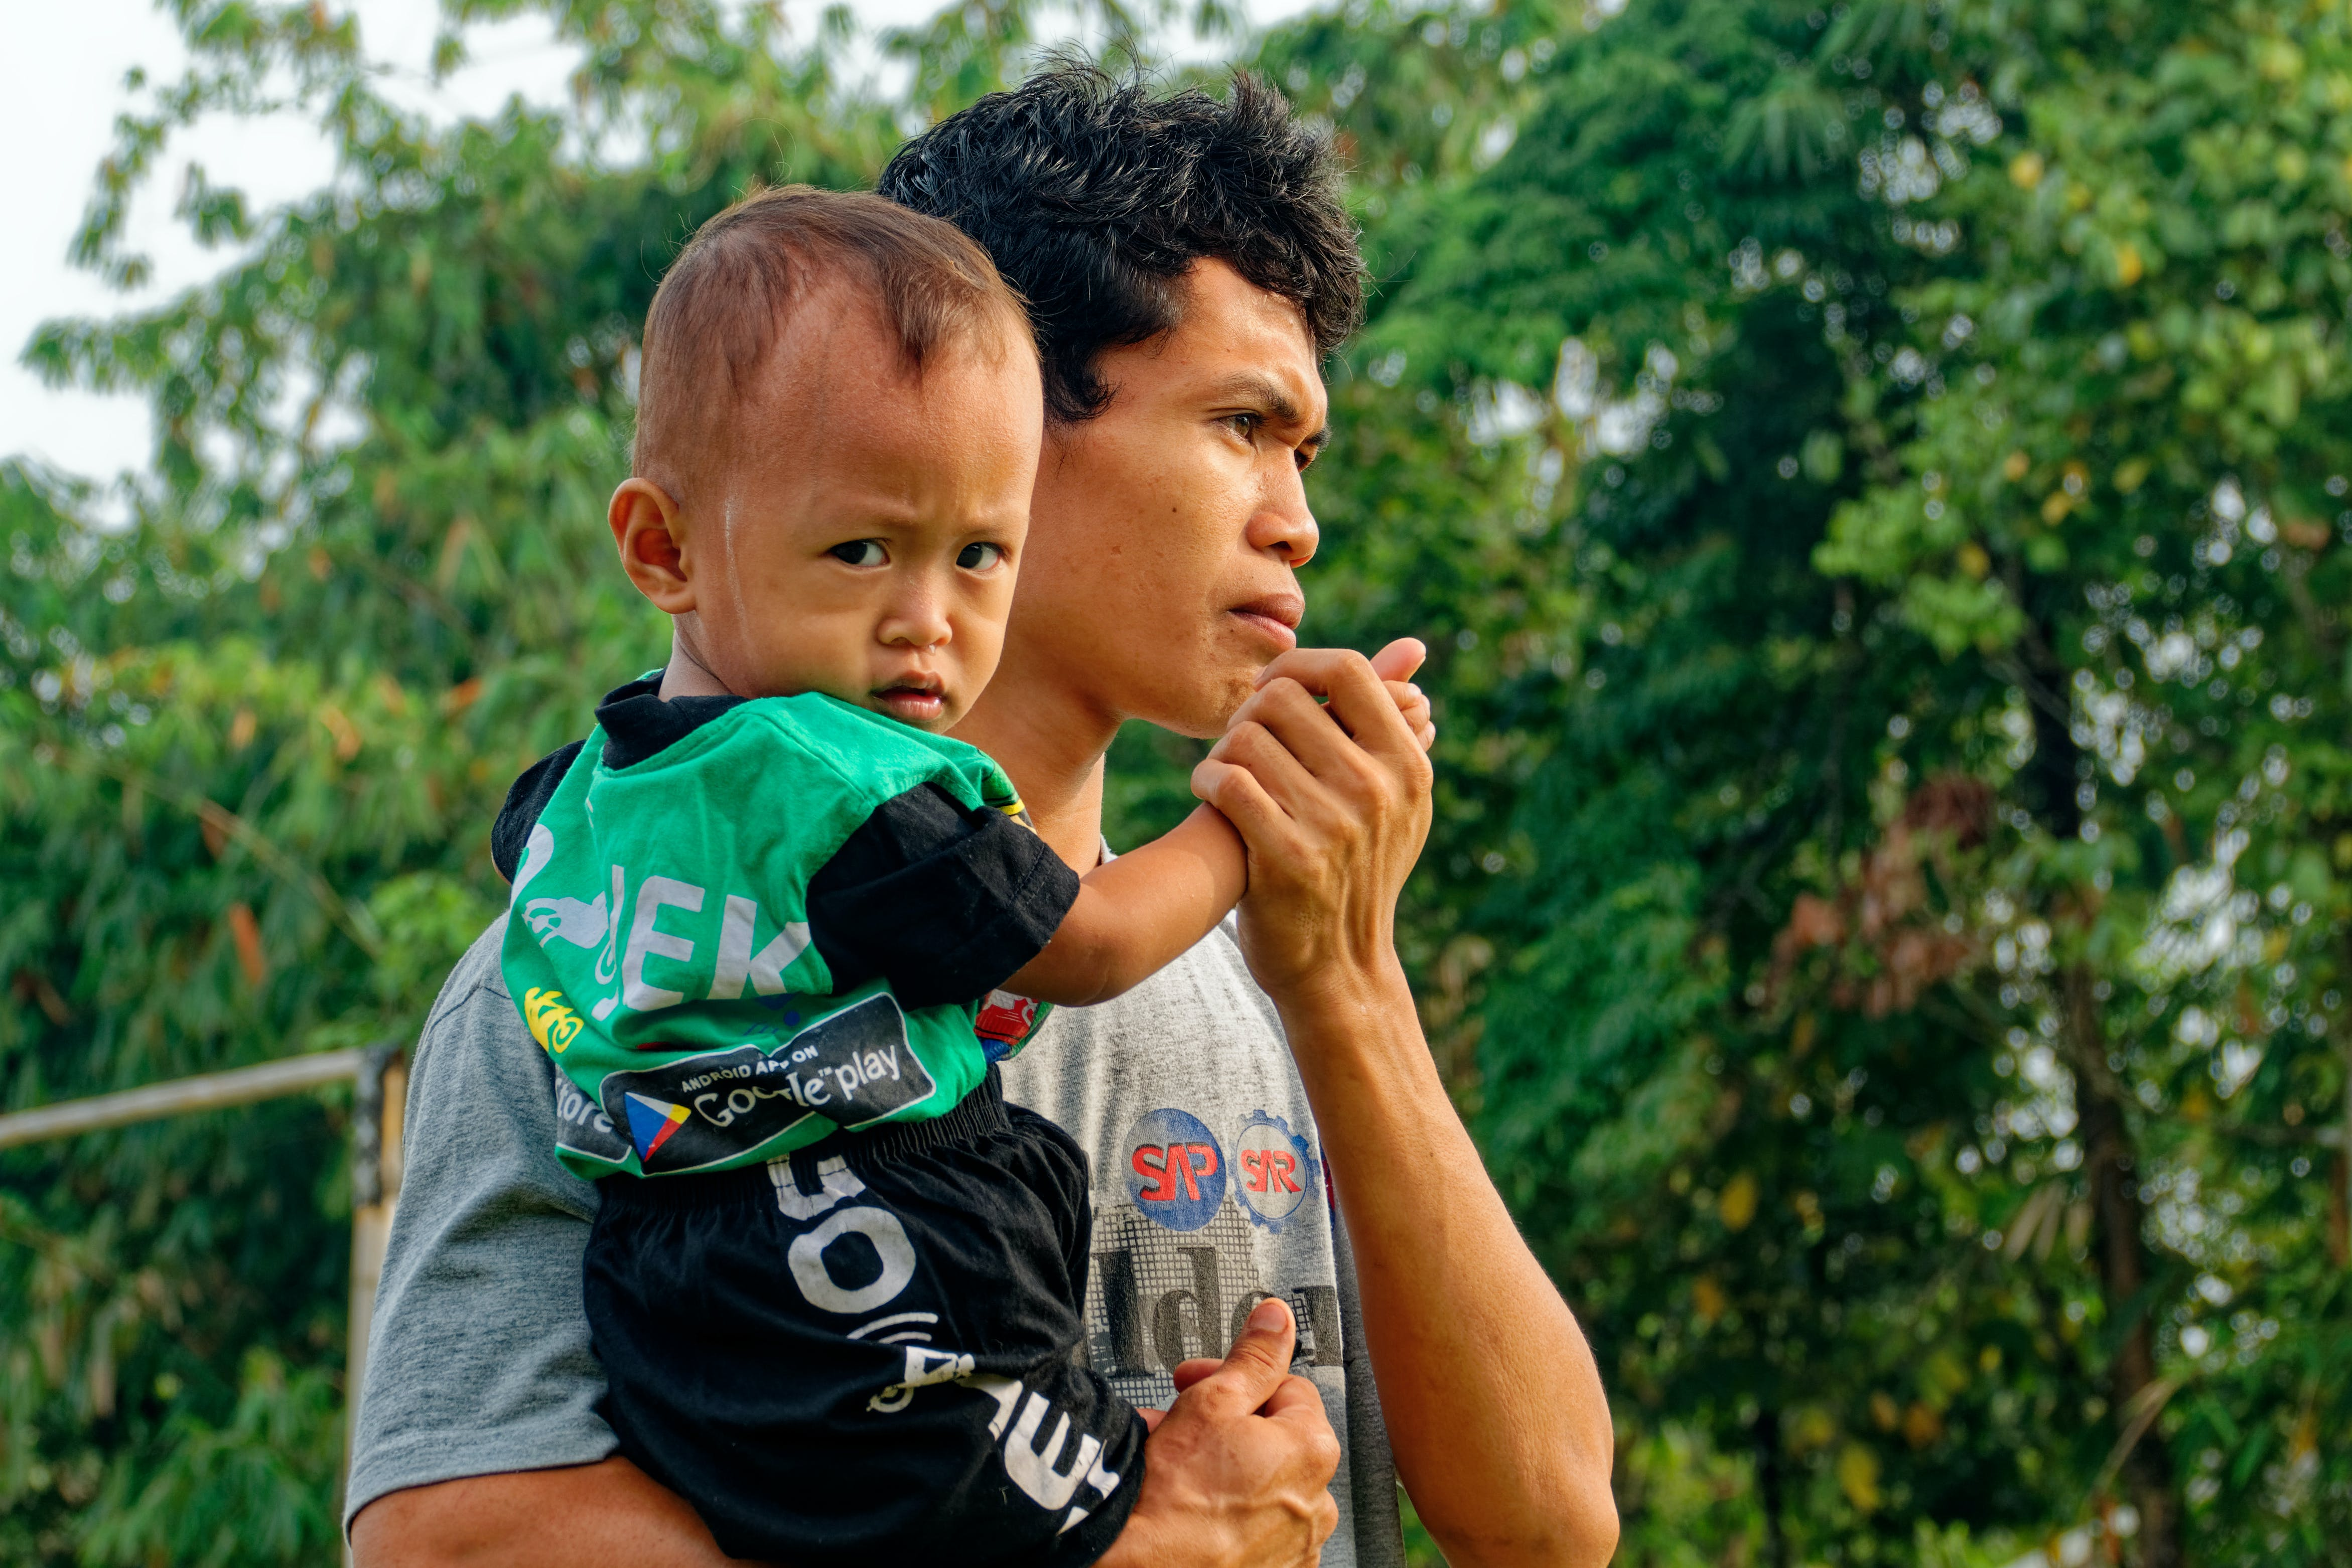 Man Carrying Baby Near Green Trees